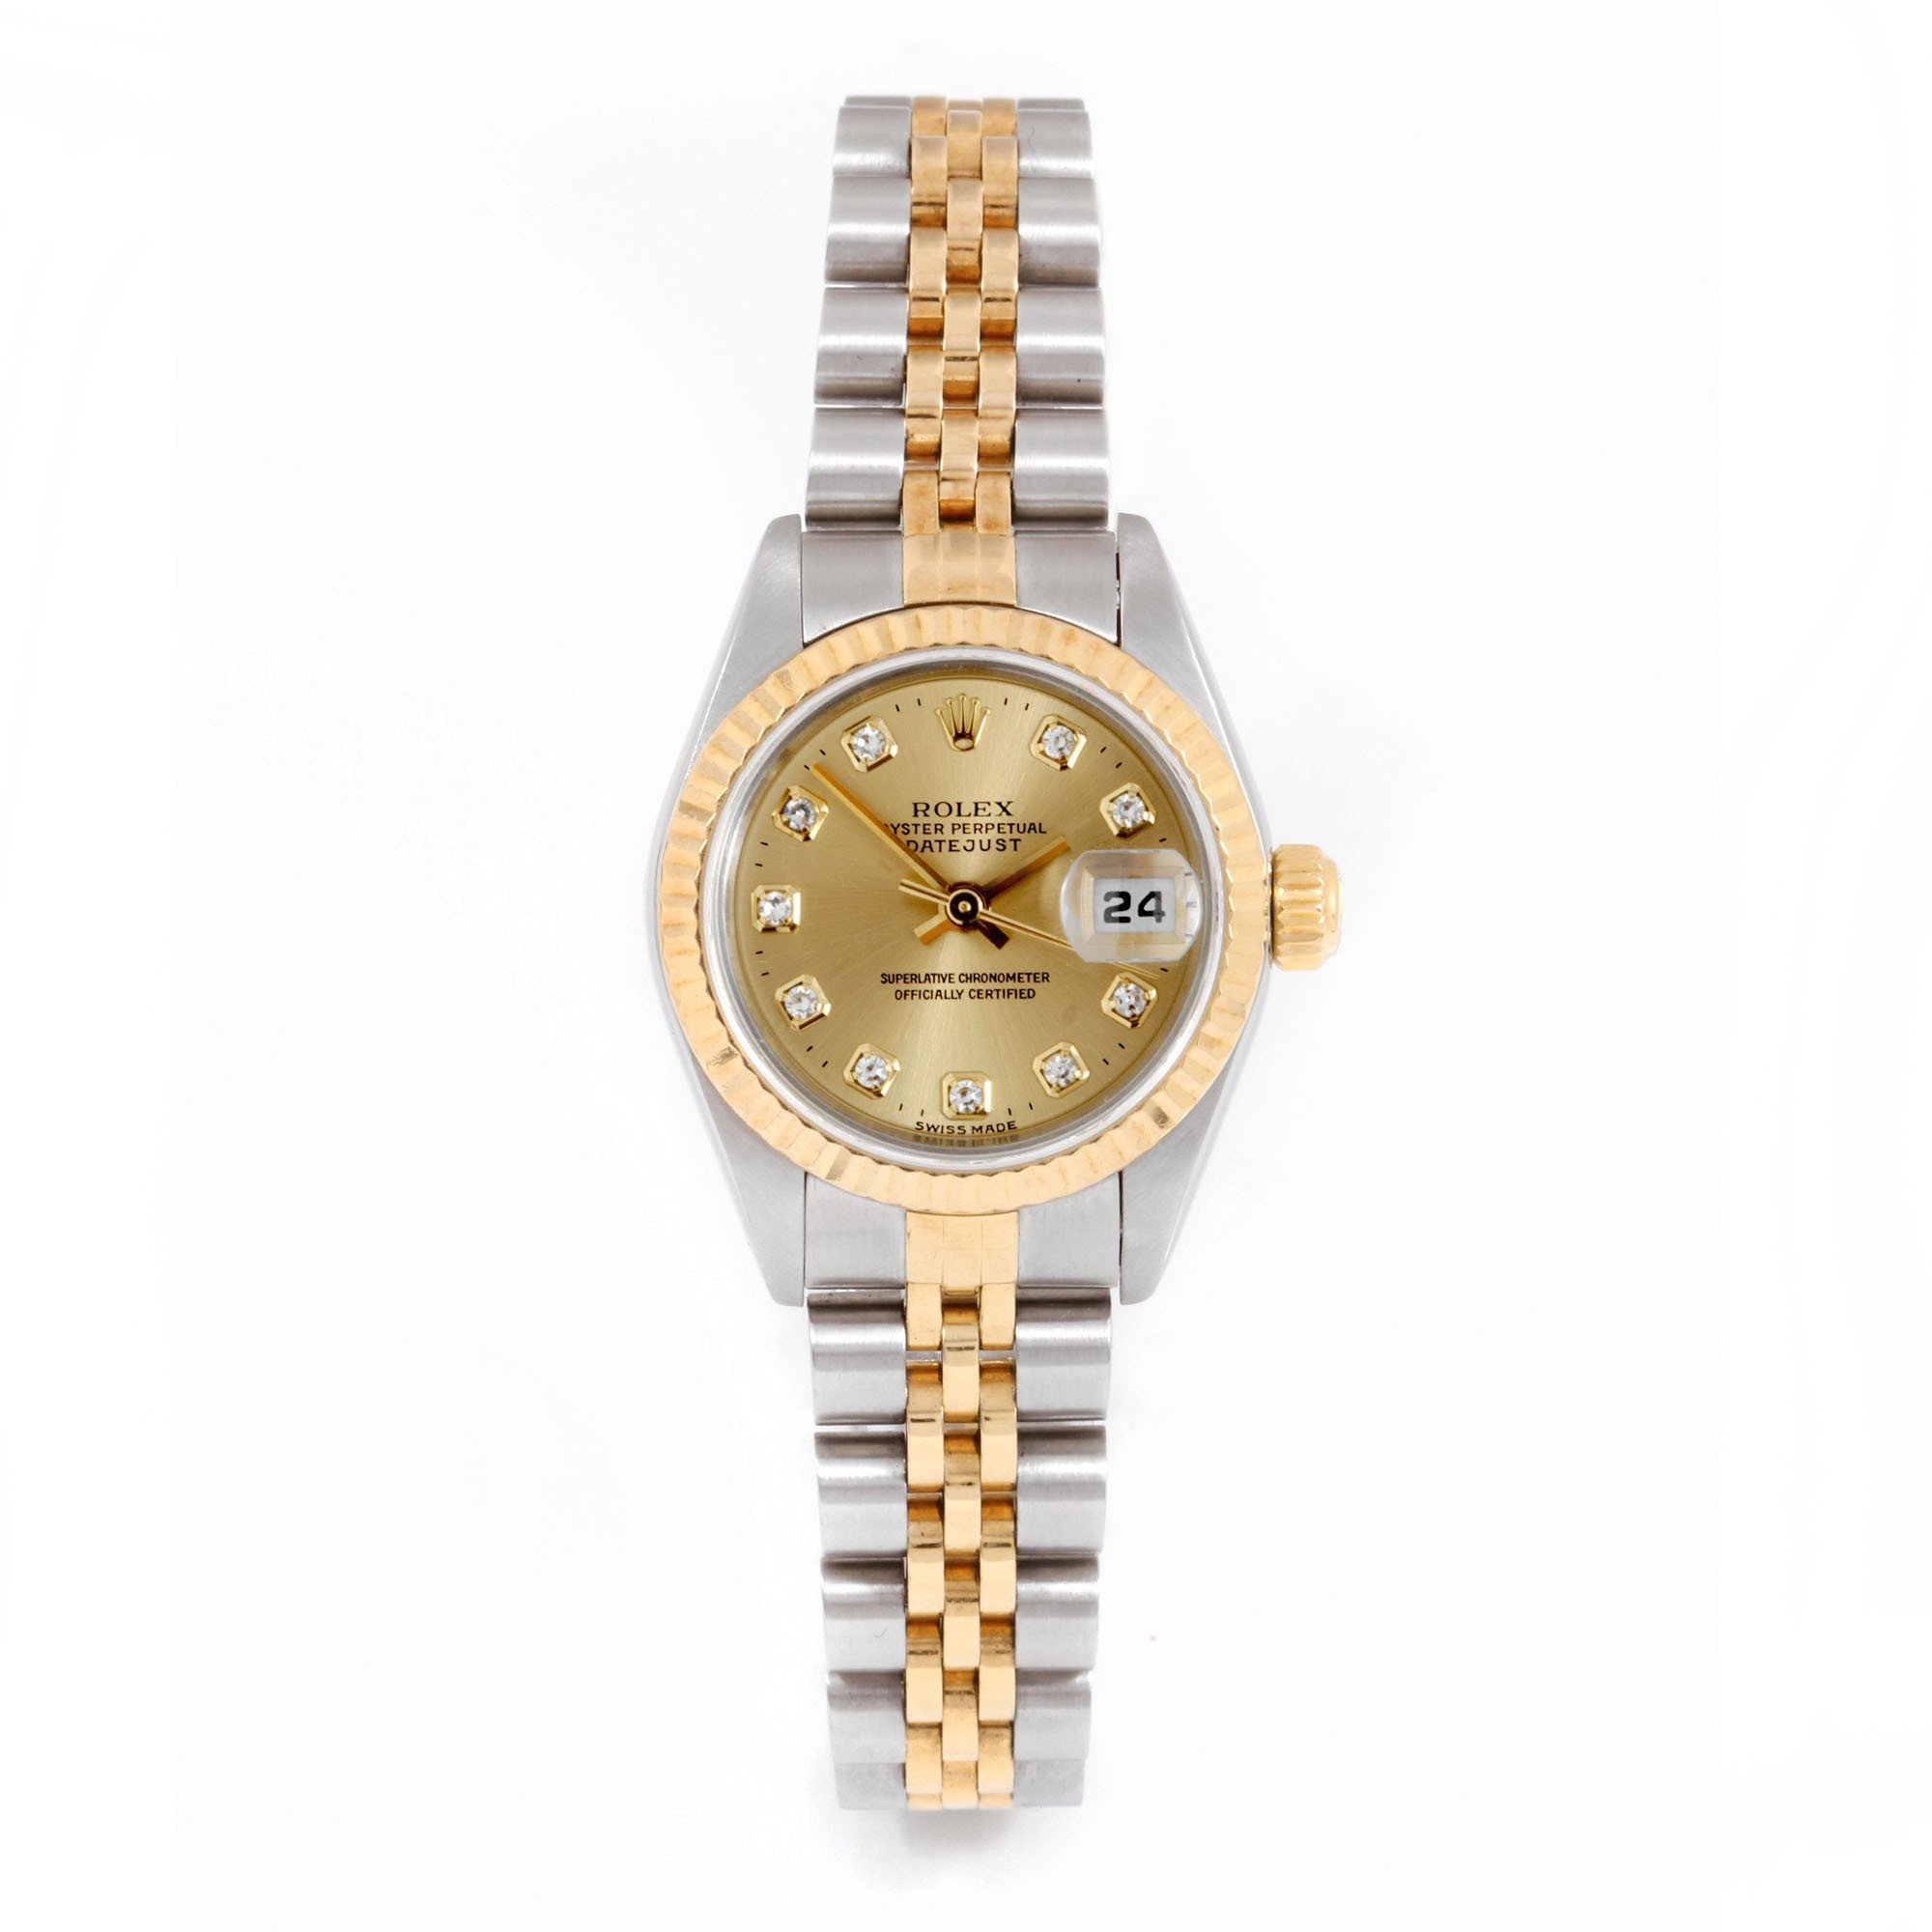 Rolex Ladies 26mm Stainless Steel & 18k Yellow Gold Datejust Swiss-Automatic Watch - 79173 - Champagne Diamond Dial - Fluted Bezel - Jubilee Band (Certified Pre-owned)